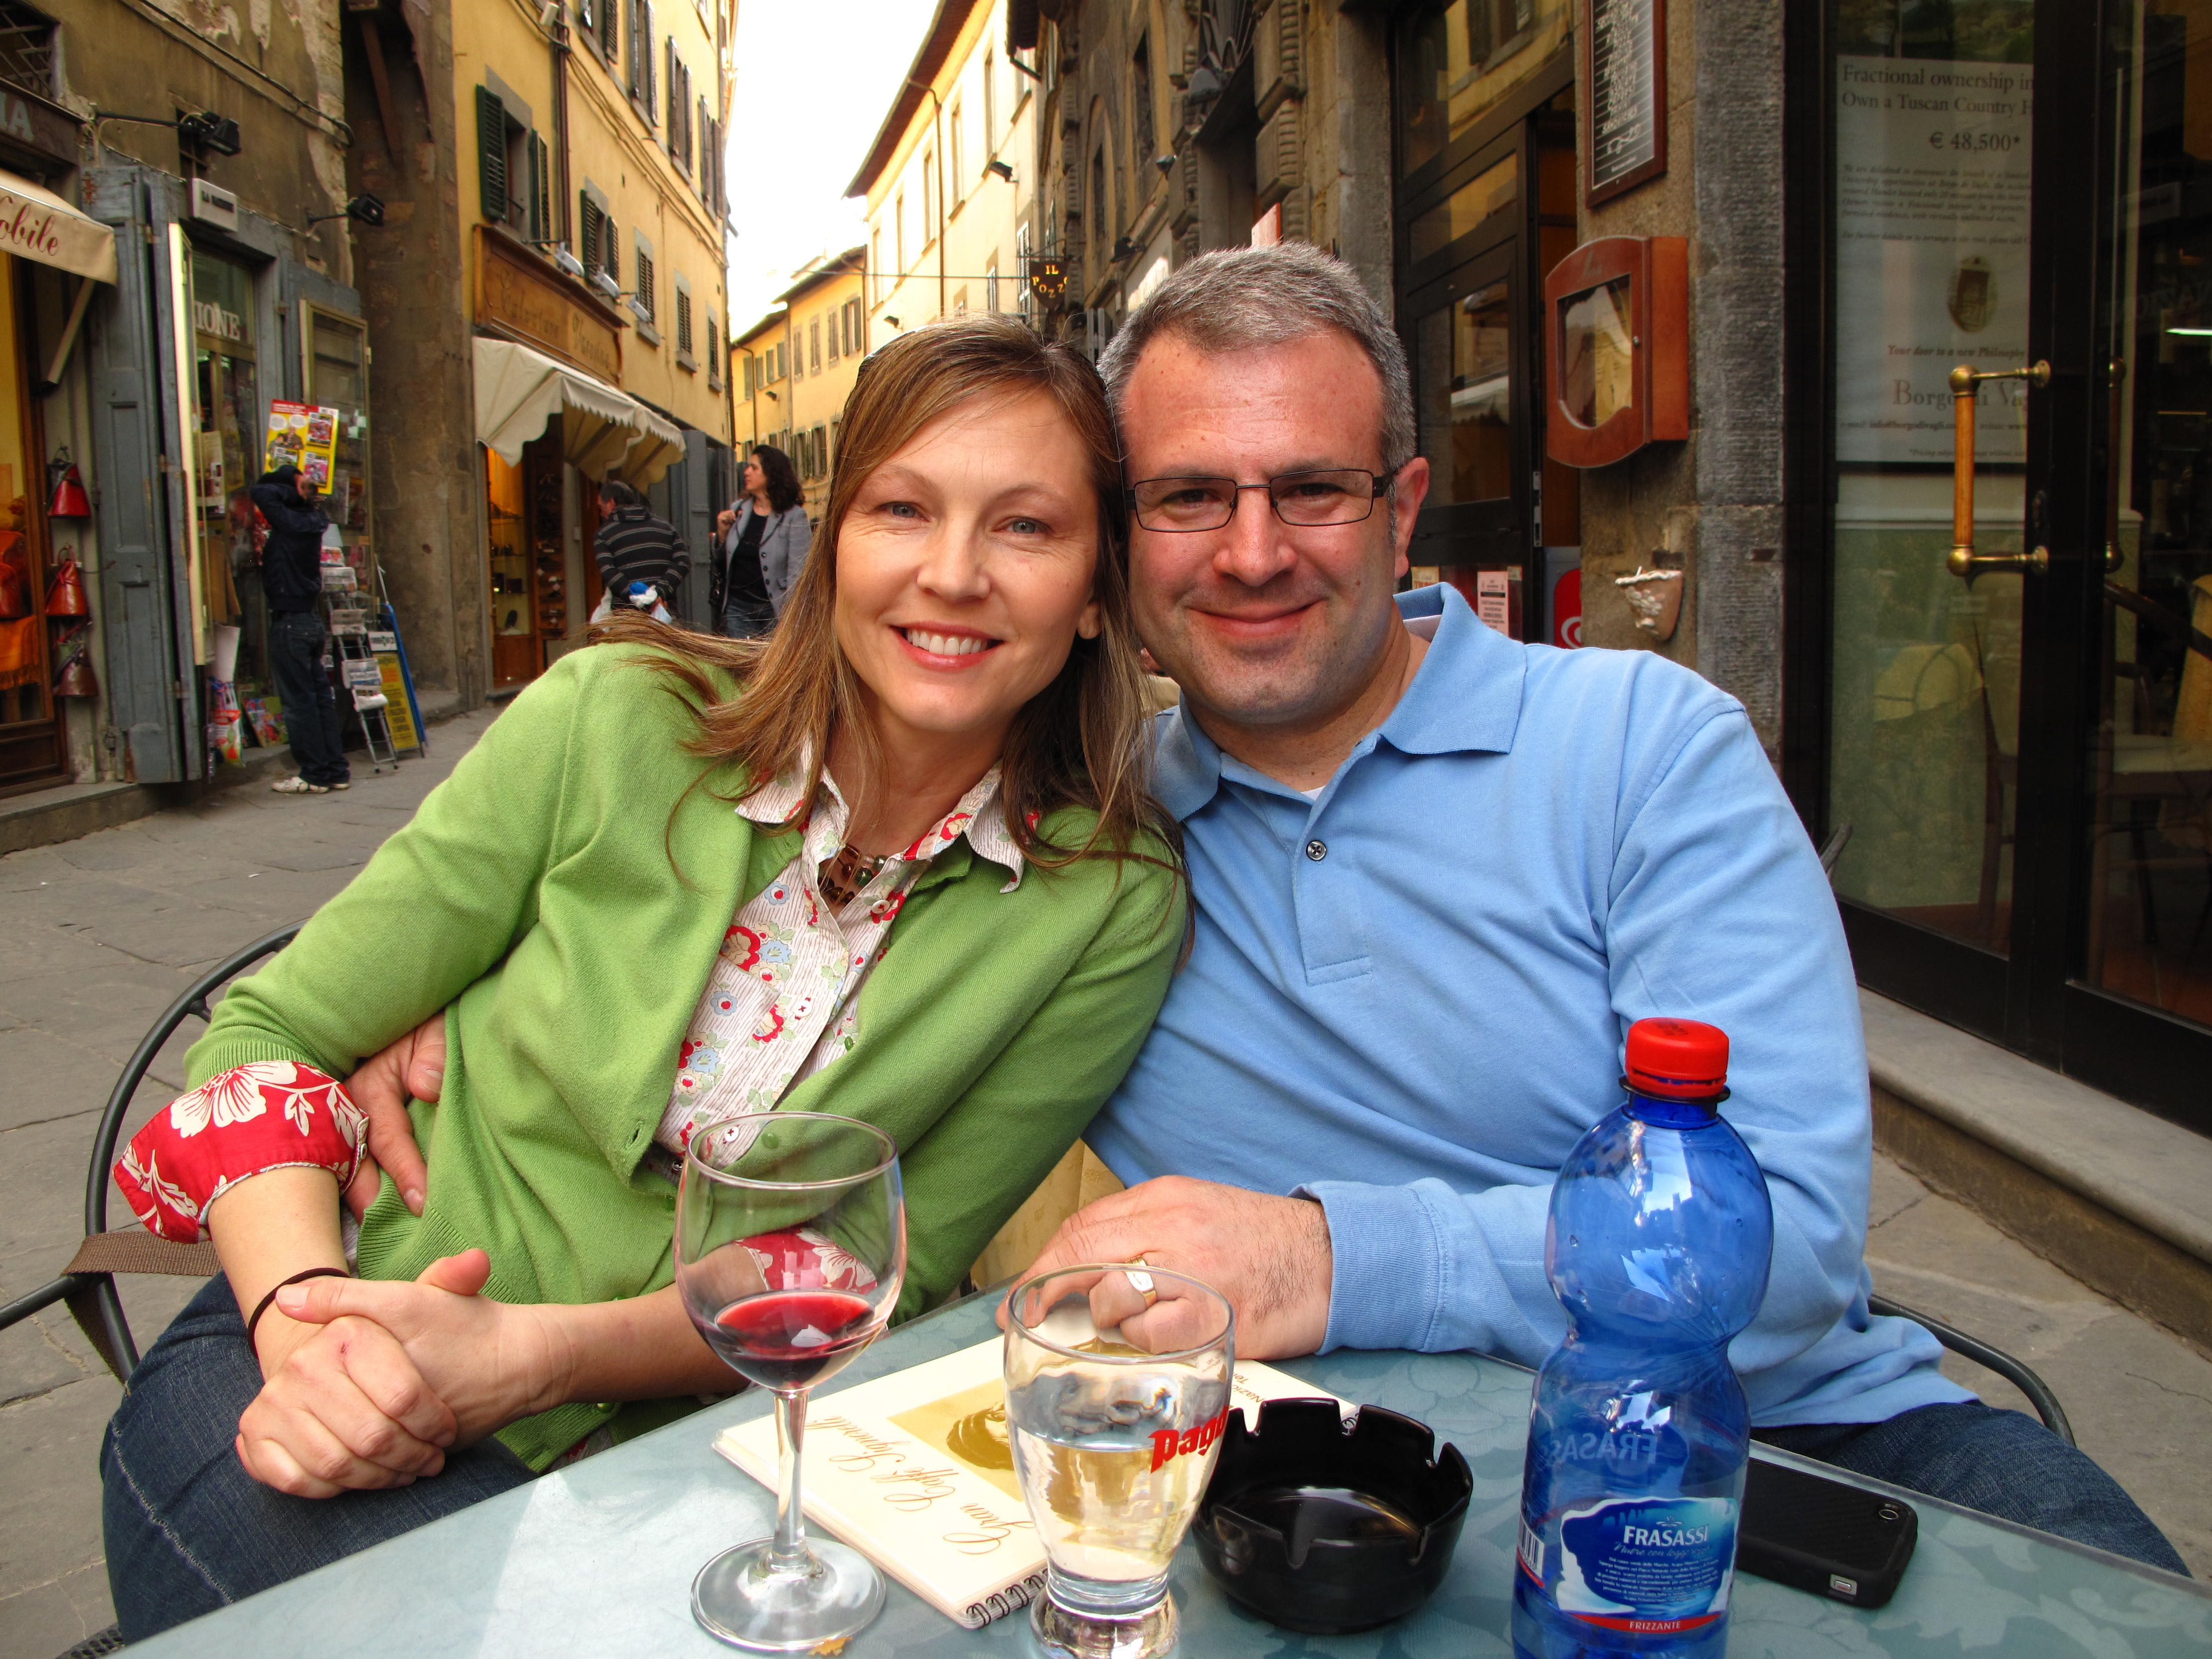 Patrick and his wife Amy in Cortona